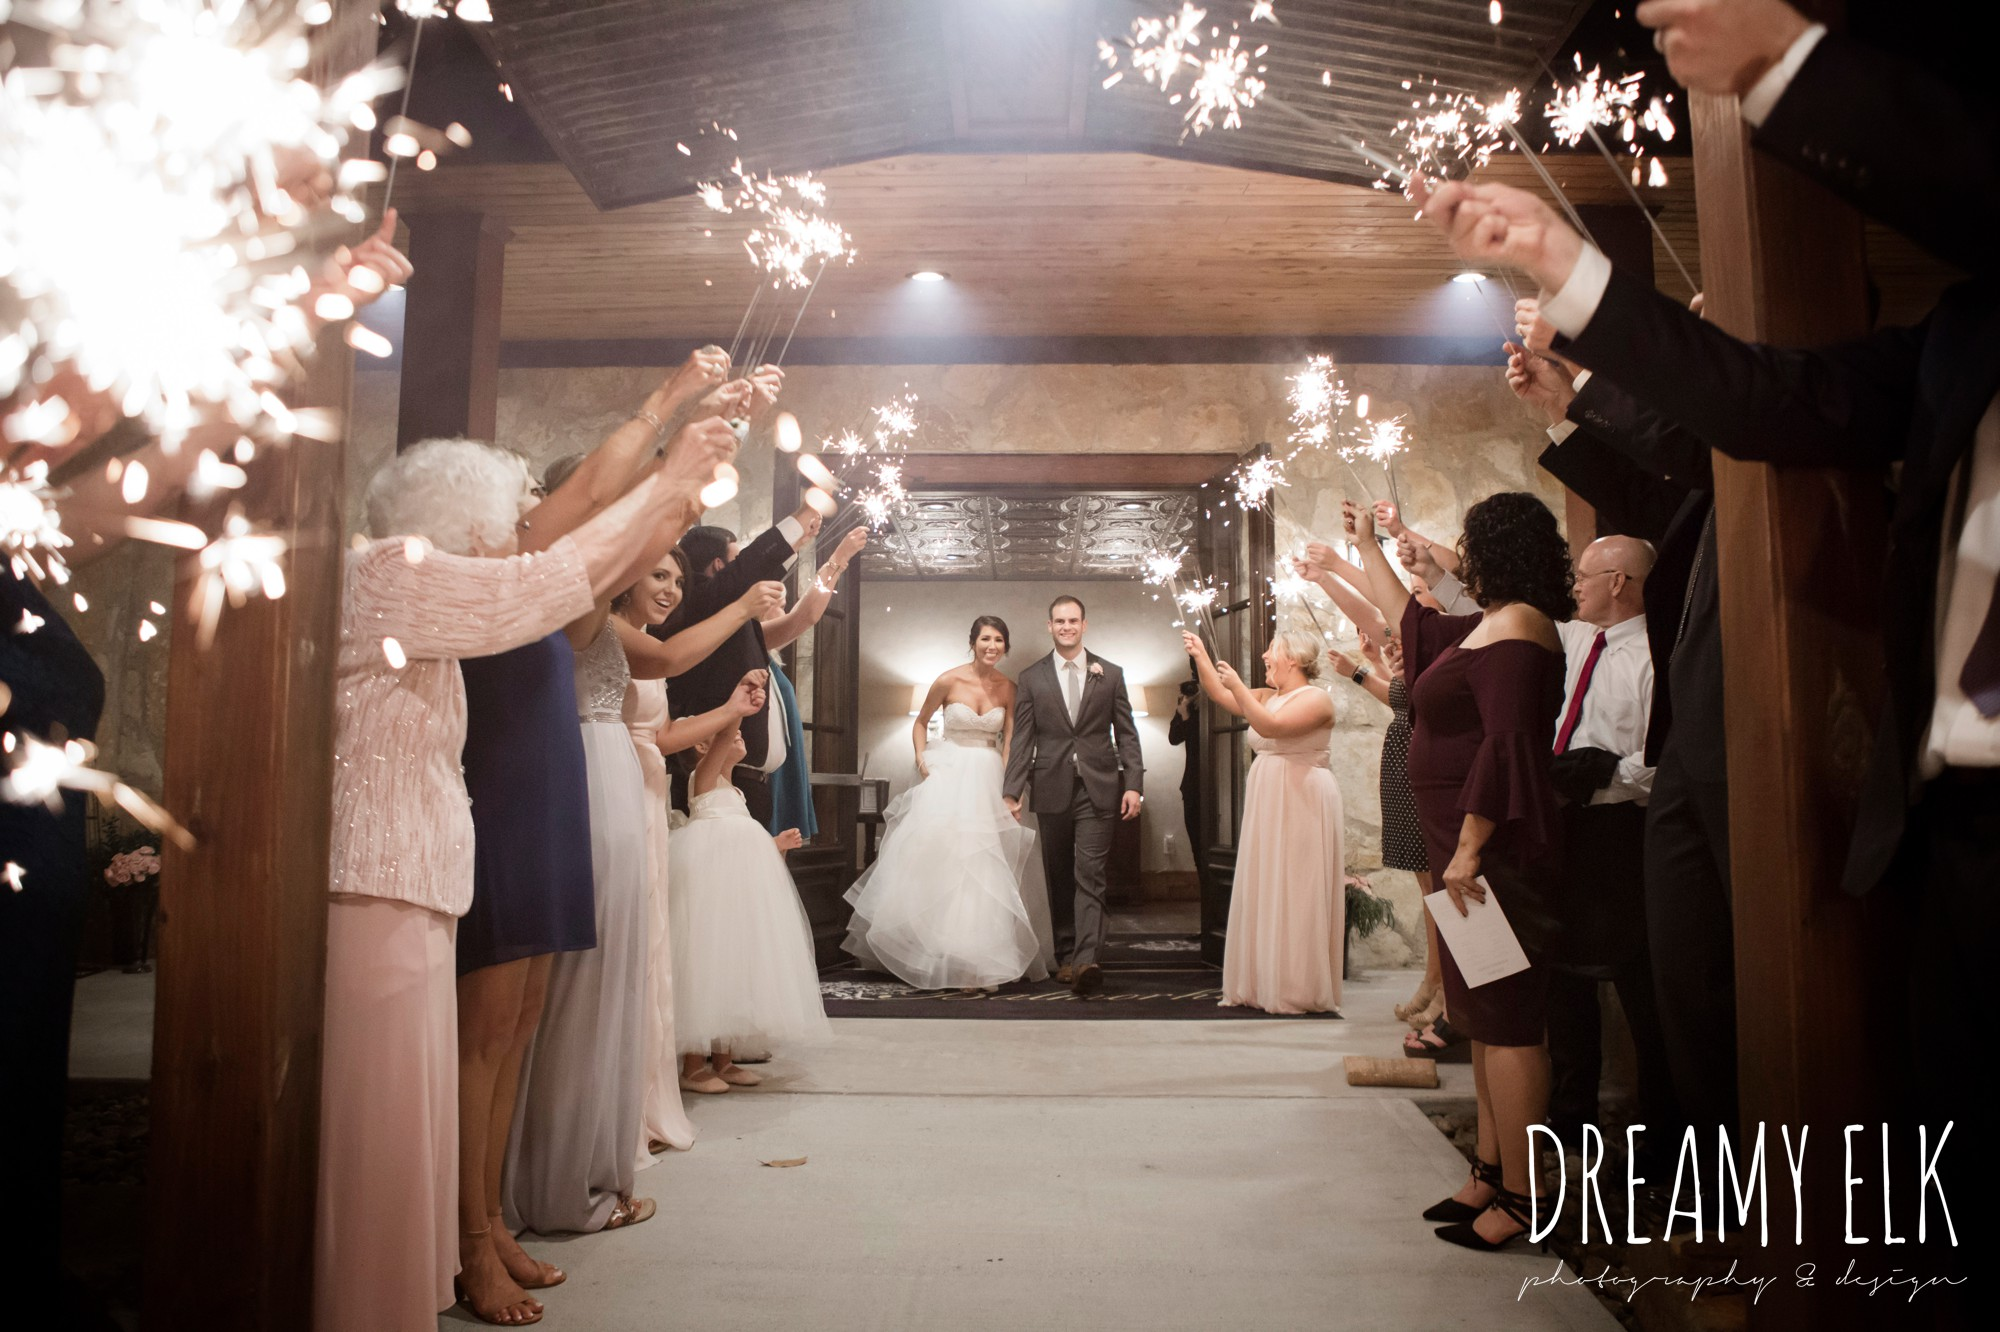 evening night wedding send off with sparklers, outdoor fall october wedding photo, blush and gray wedding, balmorhea weddings and events, dreamy elk photography and design, austin texas wedding photographer